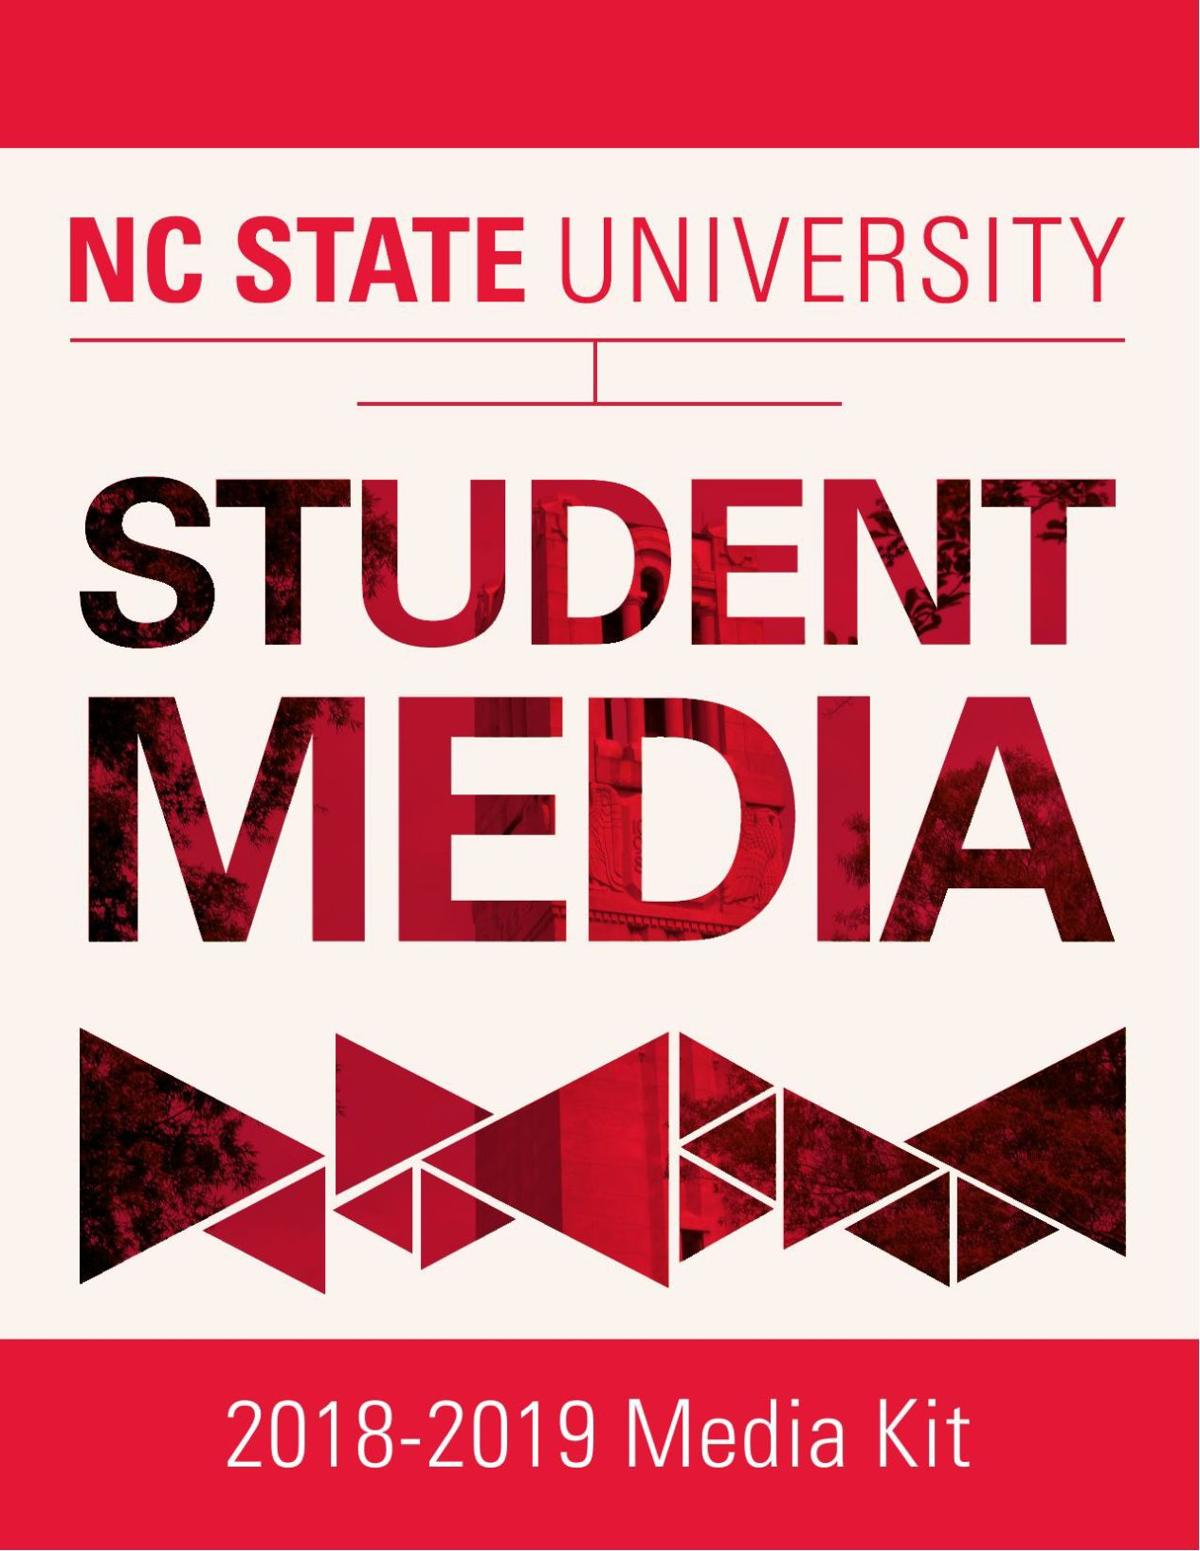 NC State Student Media Rate Card 2018-2019